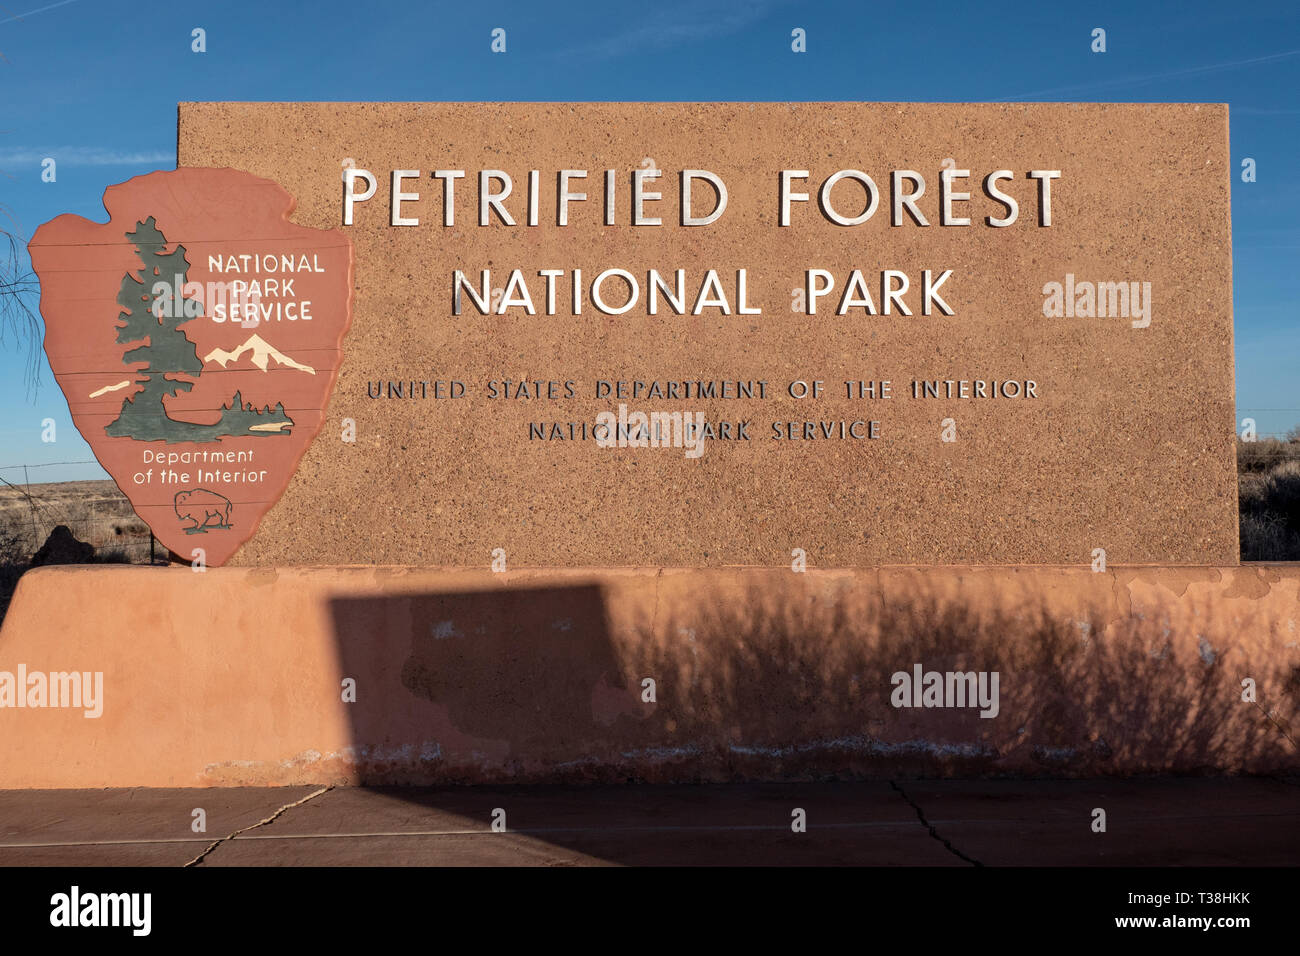 Petrified Forest National Park in Arizona, USA - Stock Image